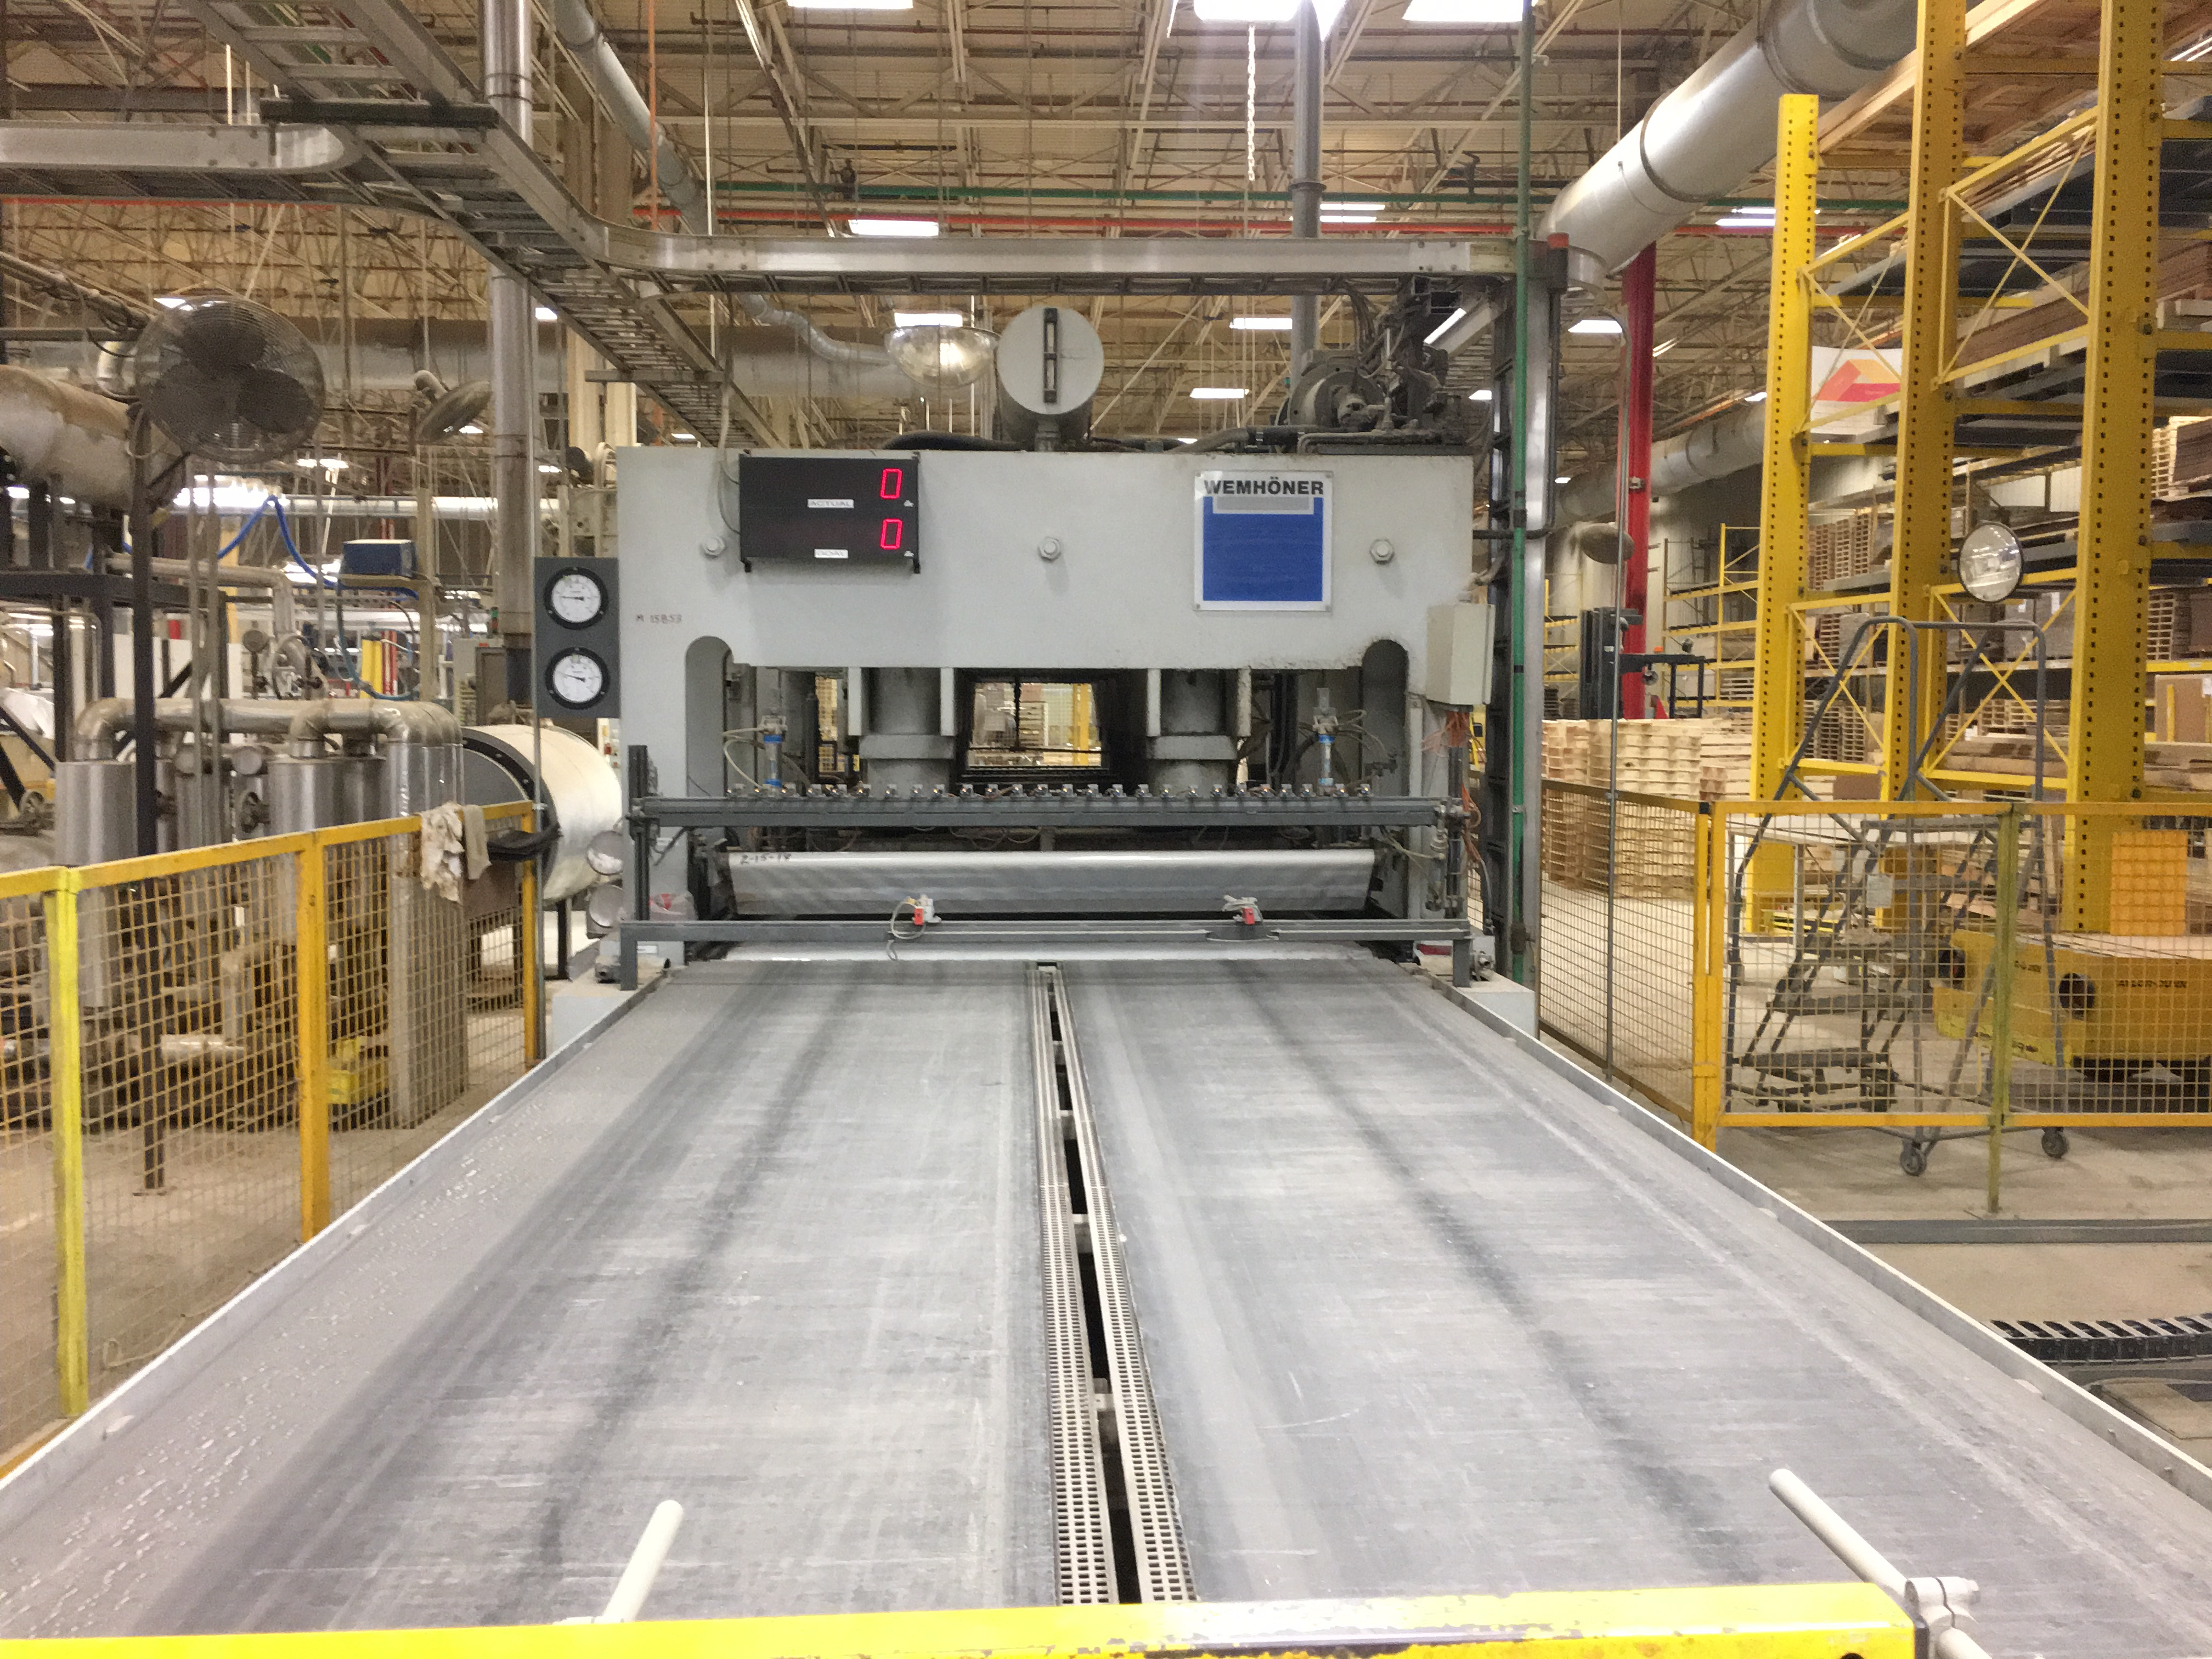 WEMHONER PRESS including infeed conveyor outfeed conveyor - Image 6 of 9